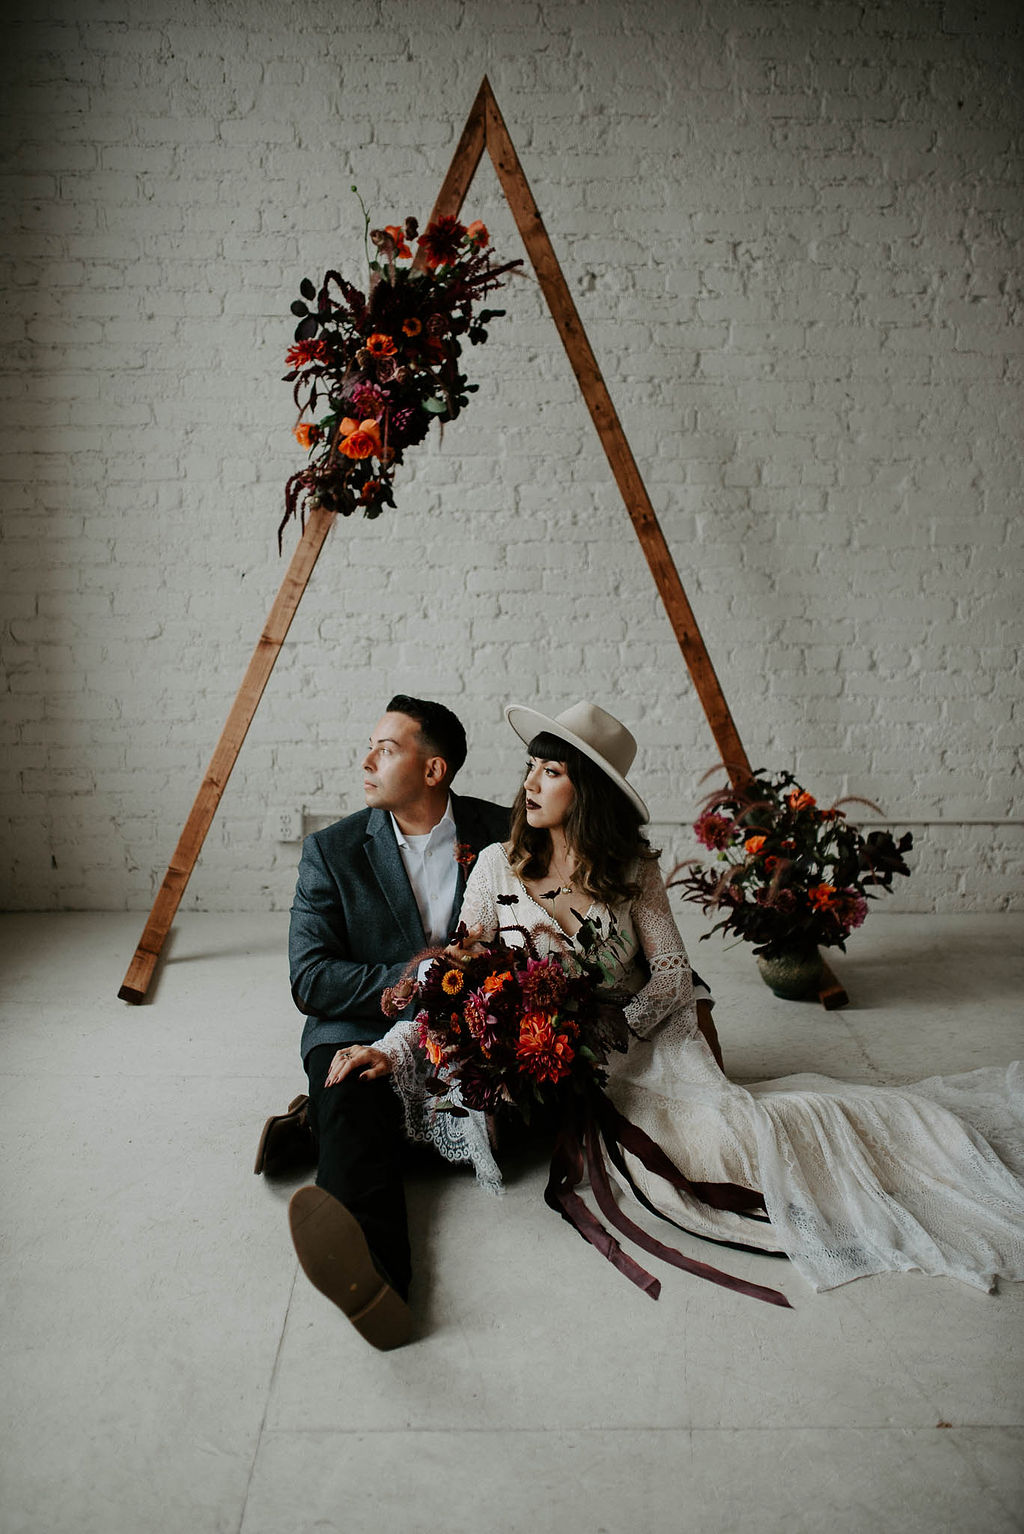 Modern Minimalist Autumn Wedding Inspiration Shoot on Apple Brides